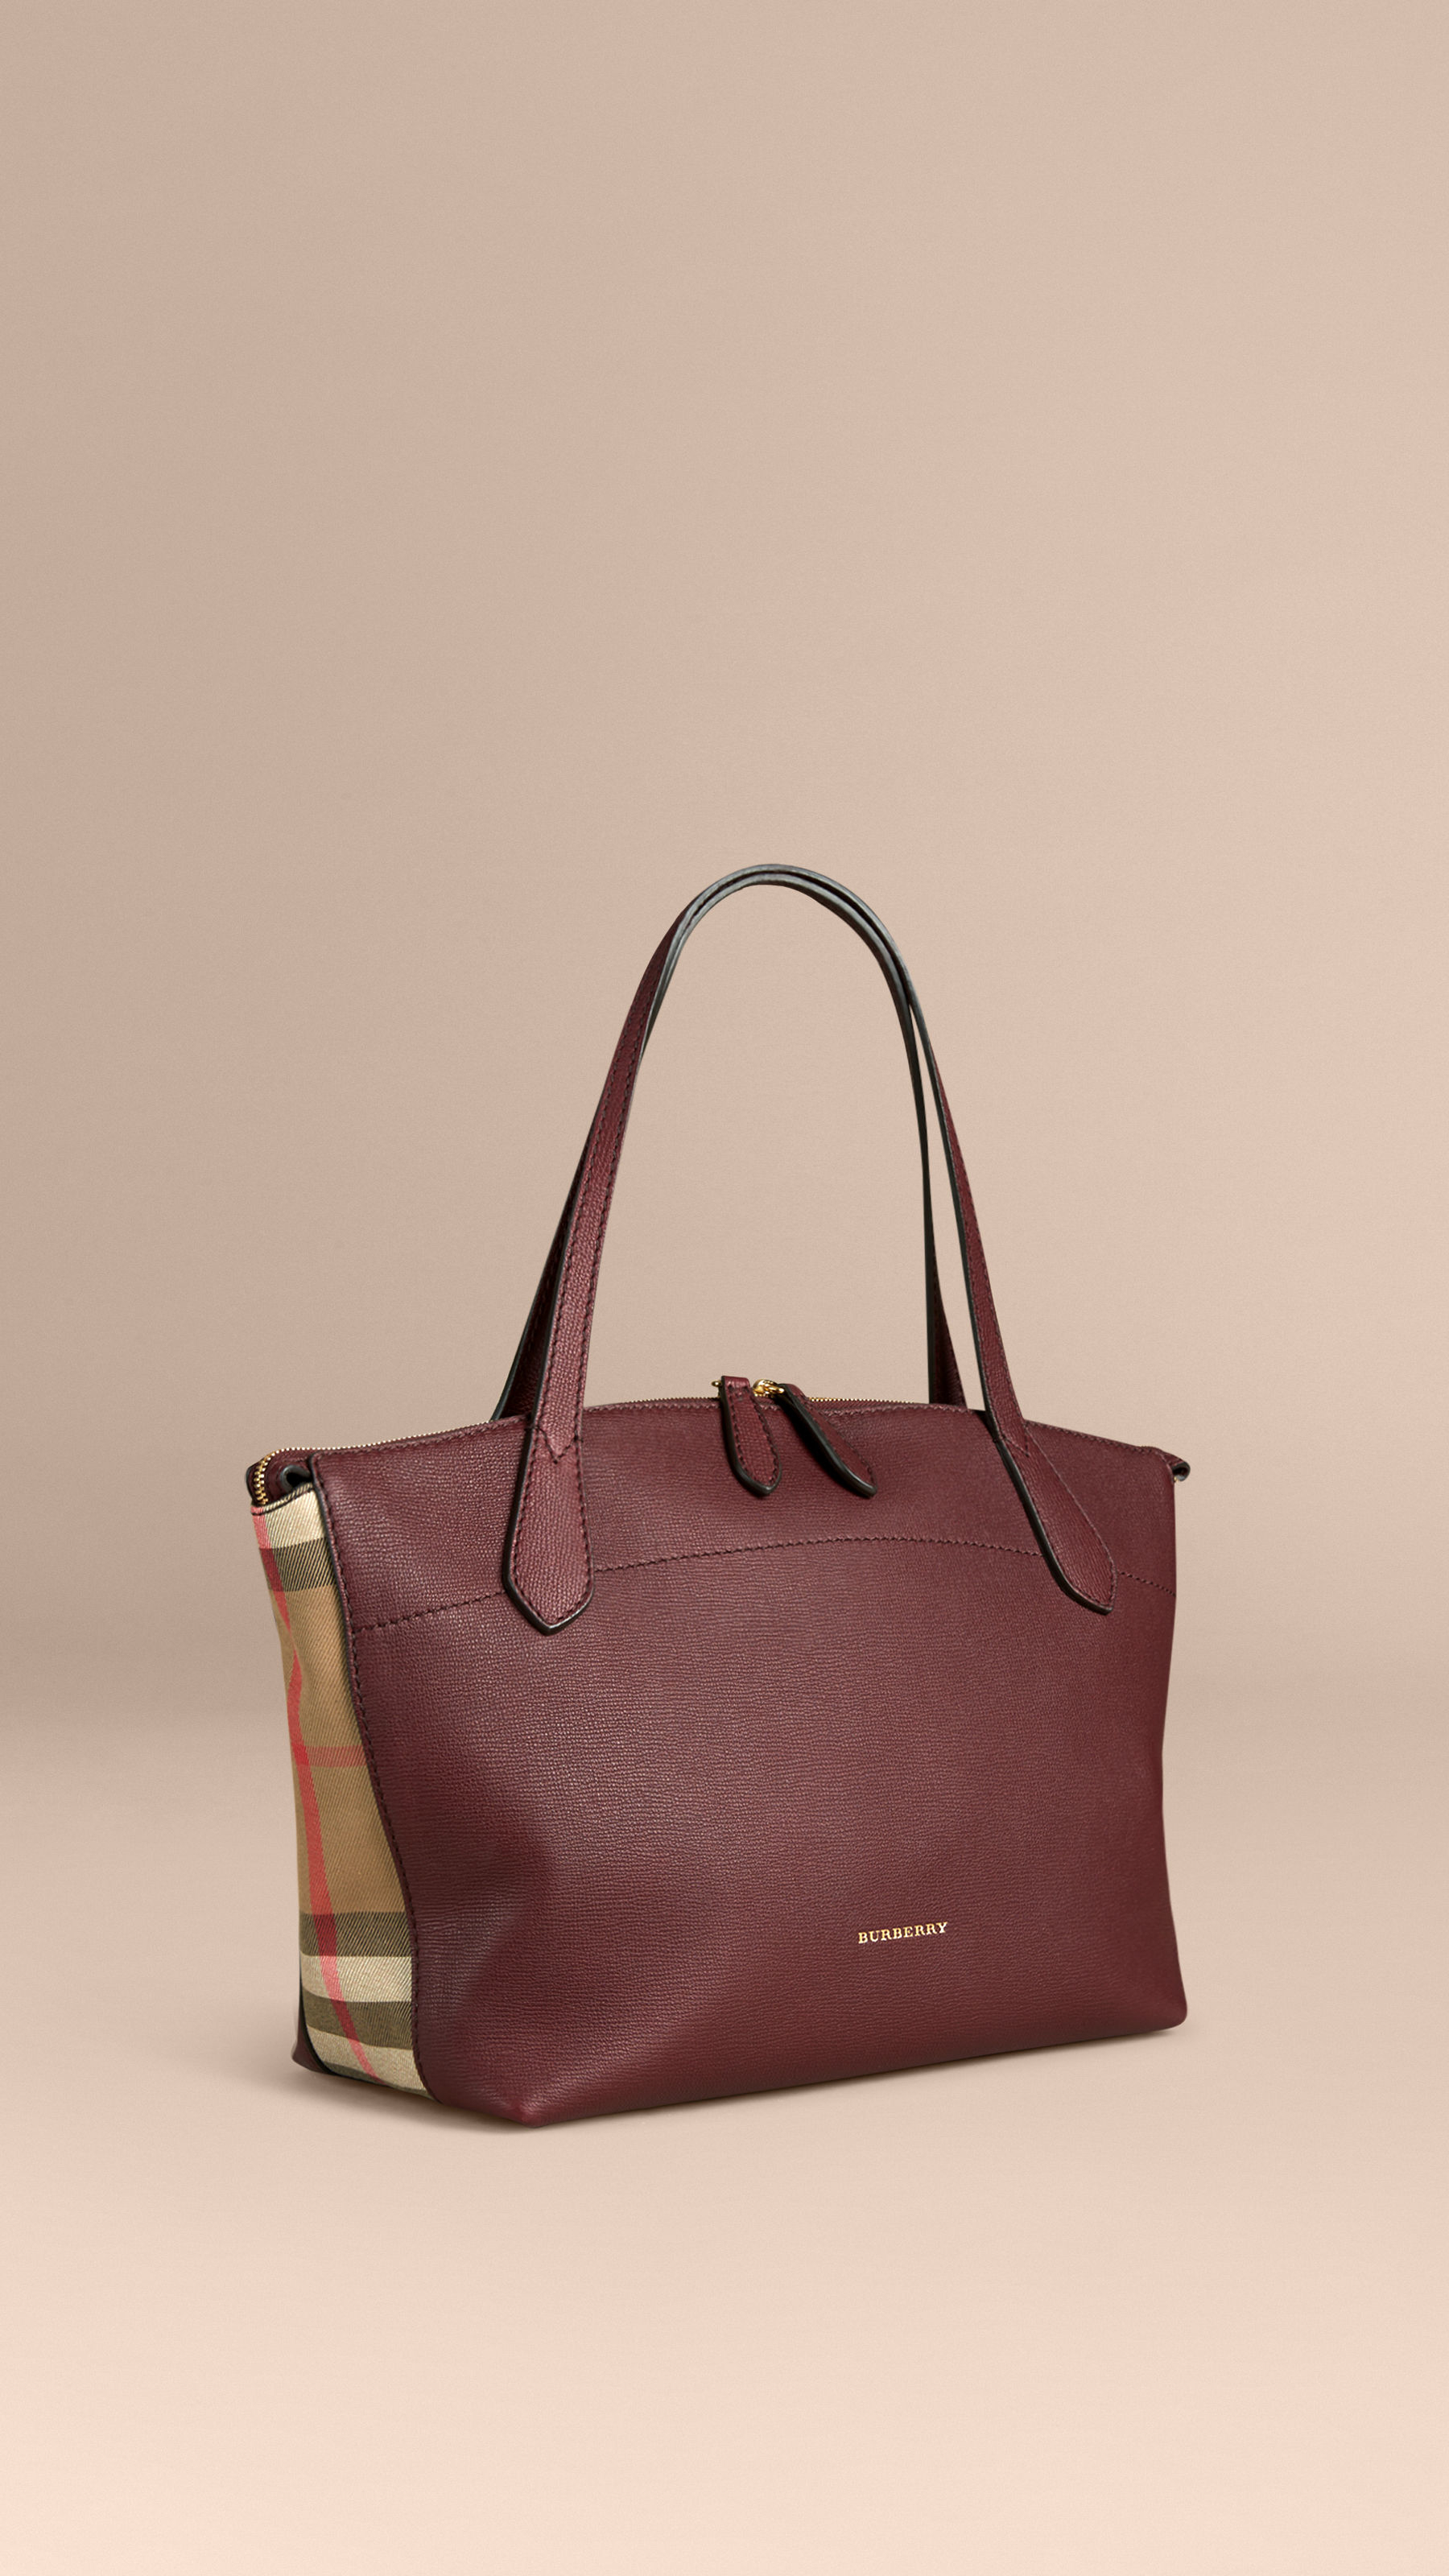 357d6d22d040 Burberry Welburn Medium Leather And House Check Tote Bag .